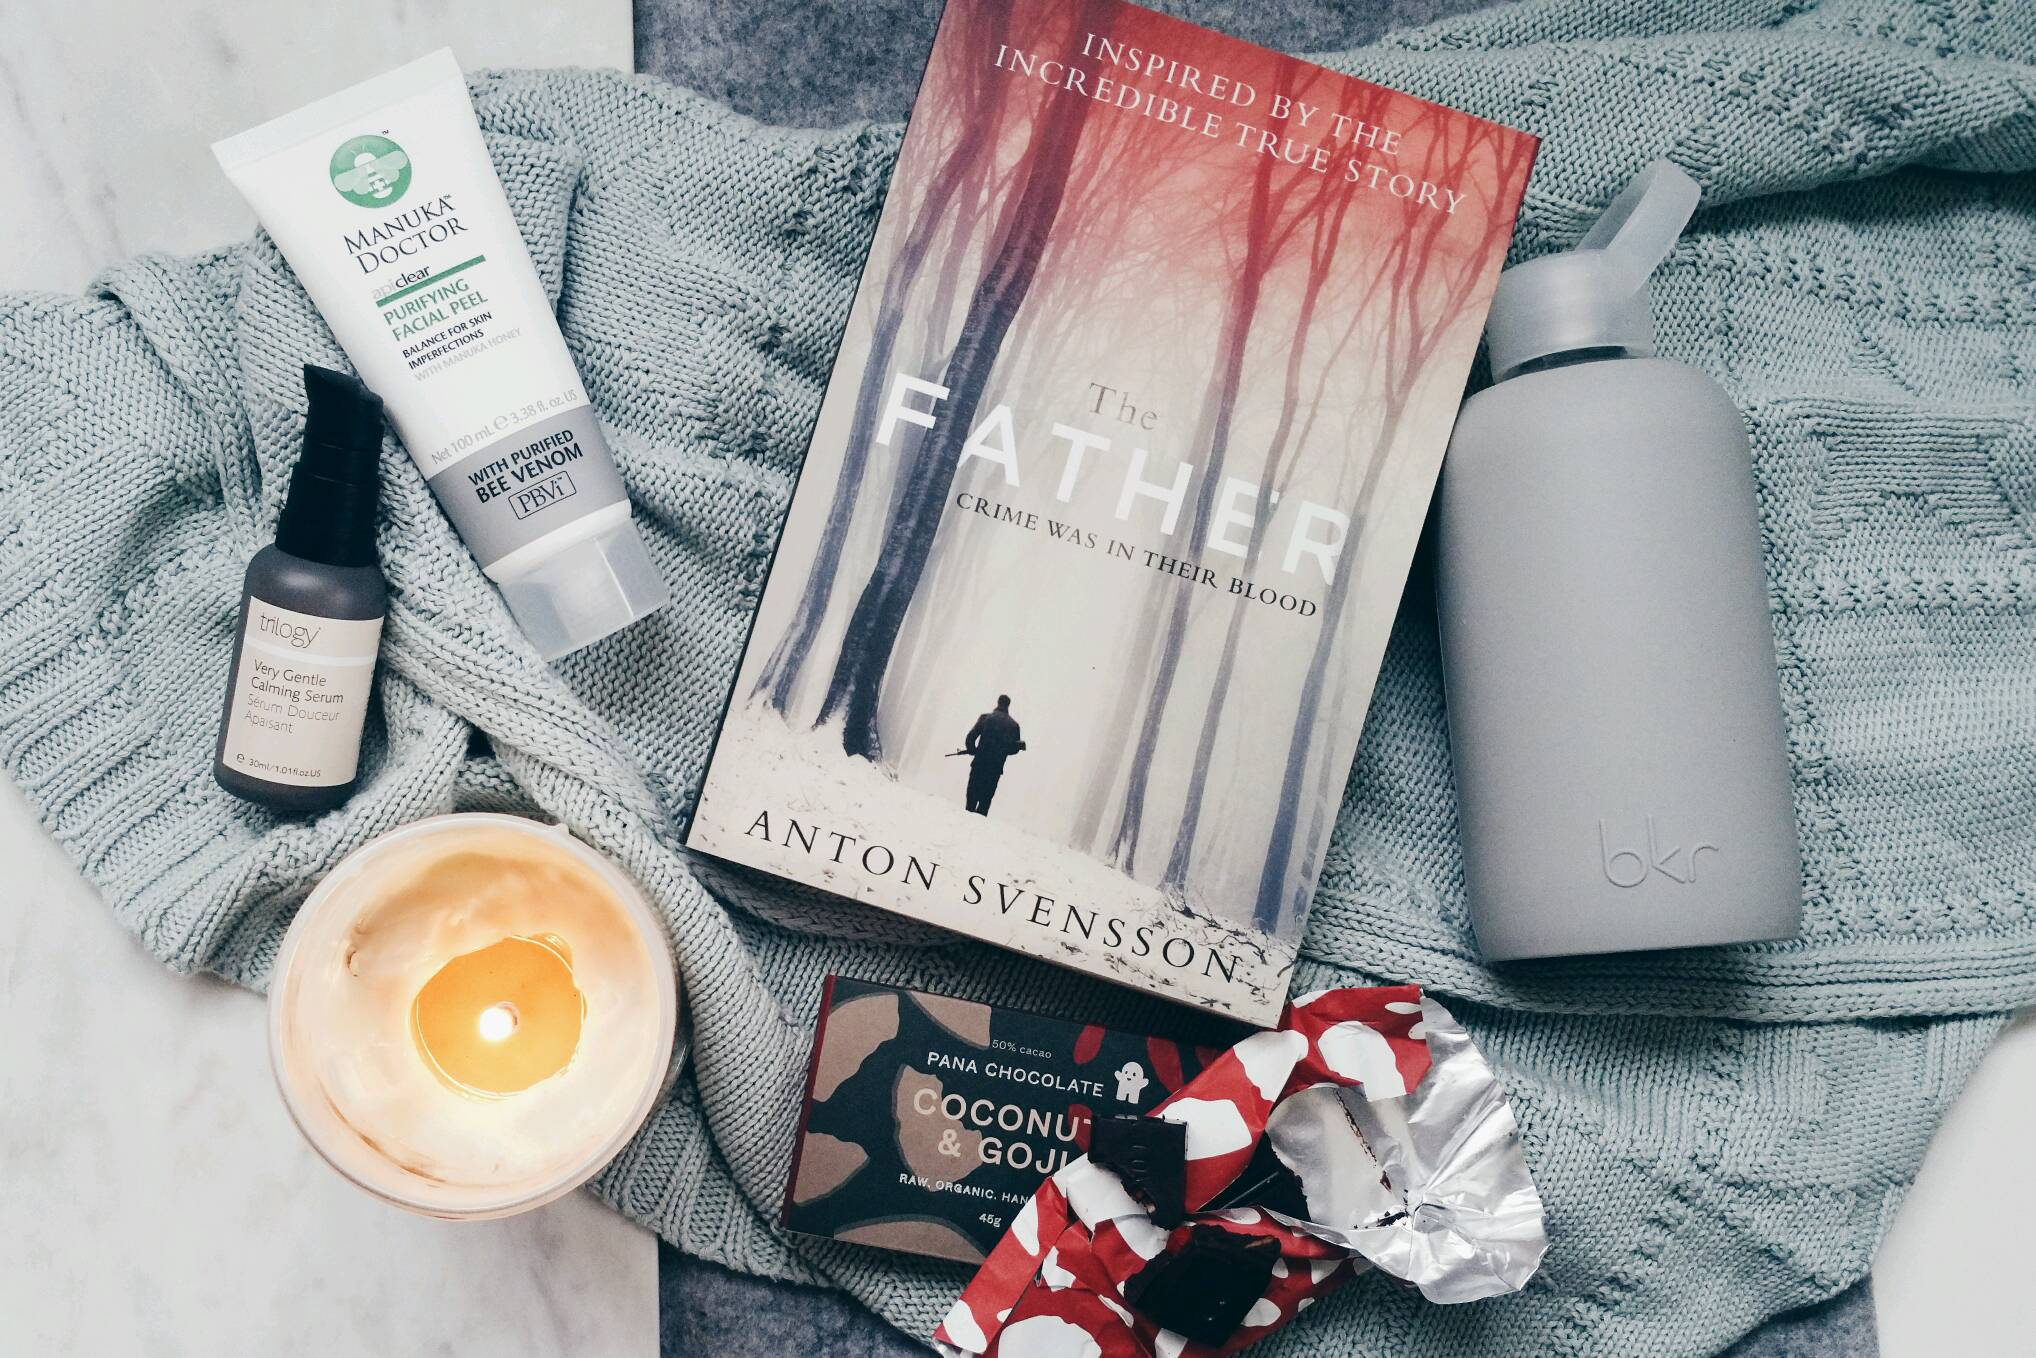 Book Review | The Father by Anton Svensson